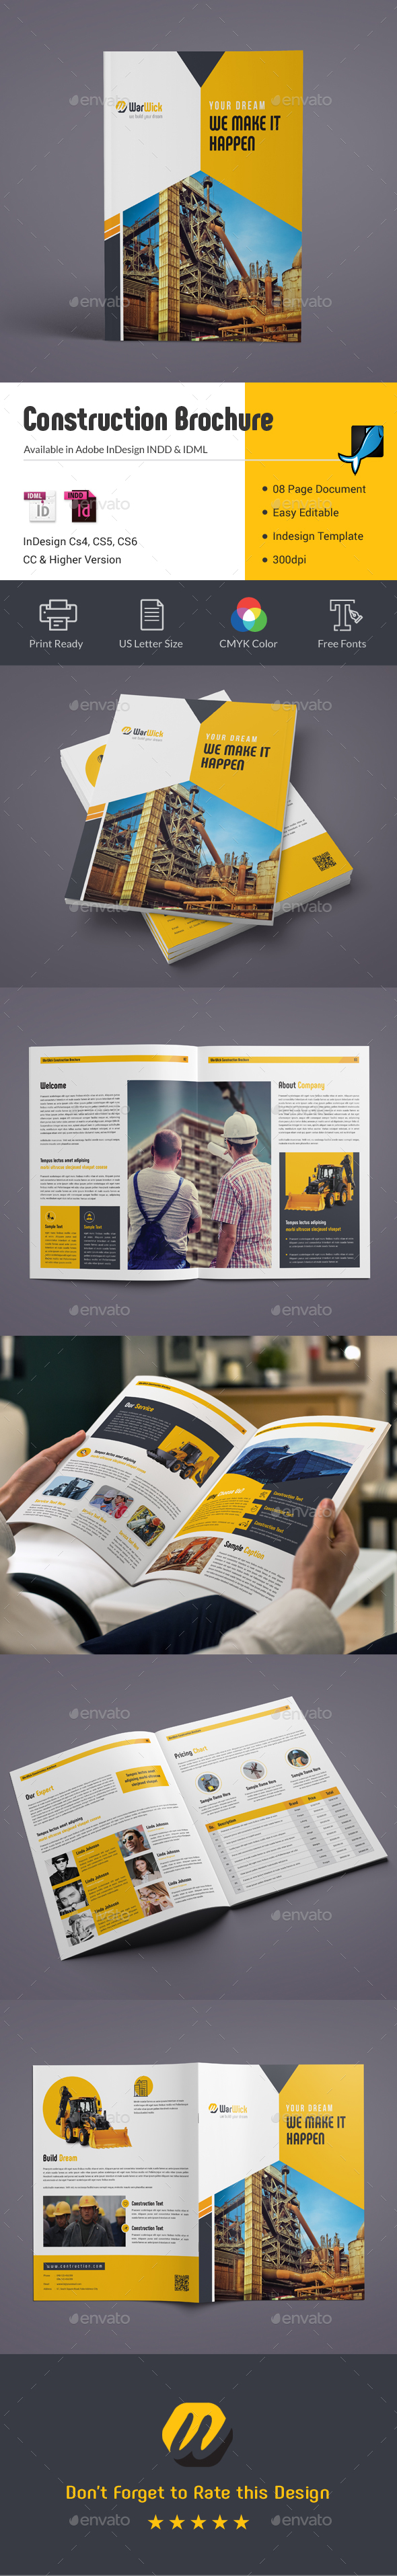 08 Pages Construction Brochure - Corporate Brochures